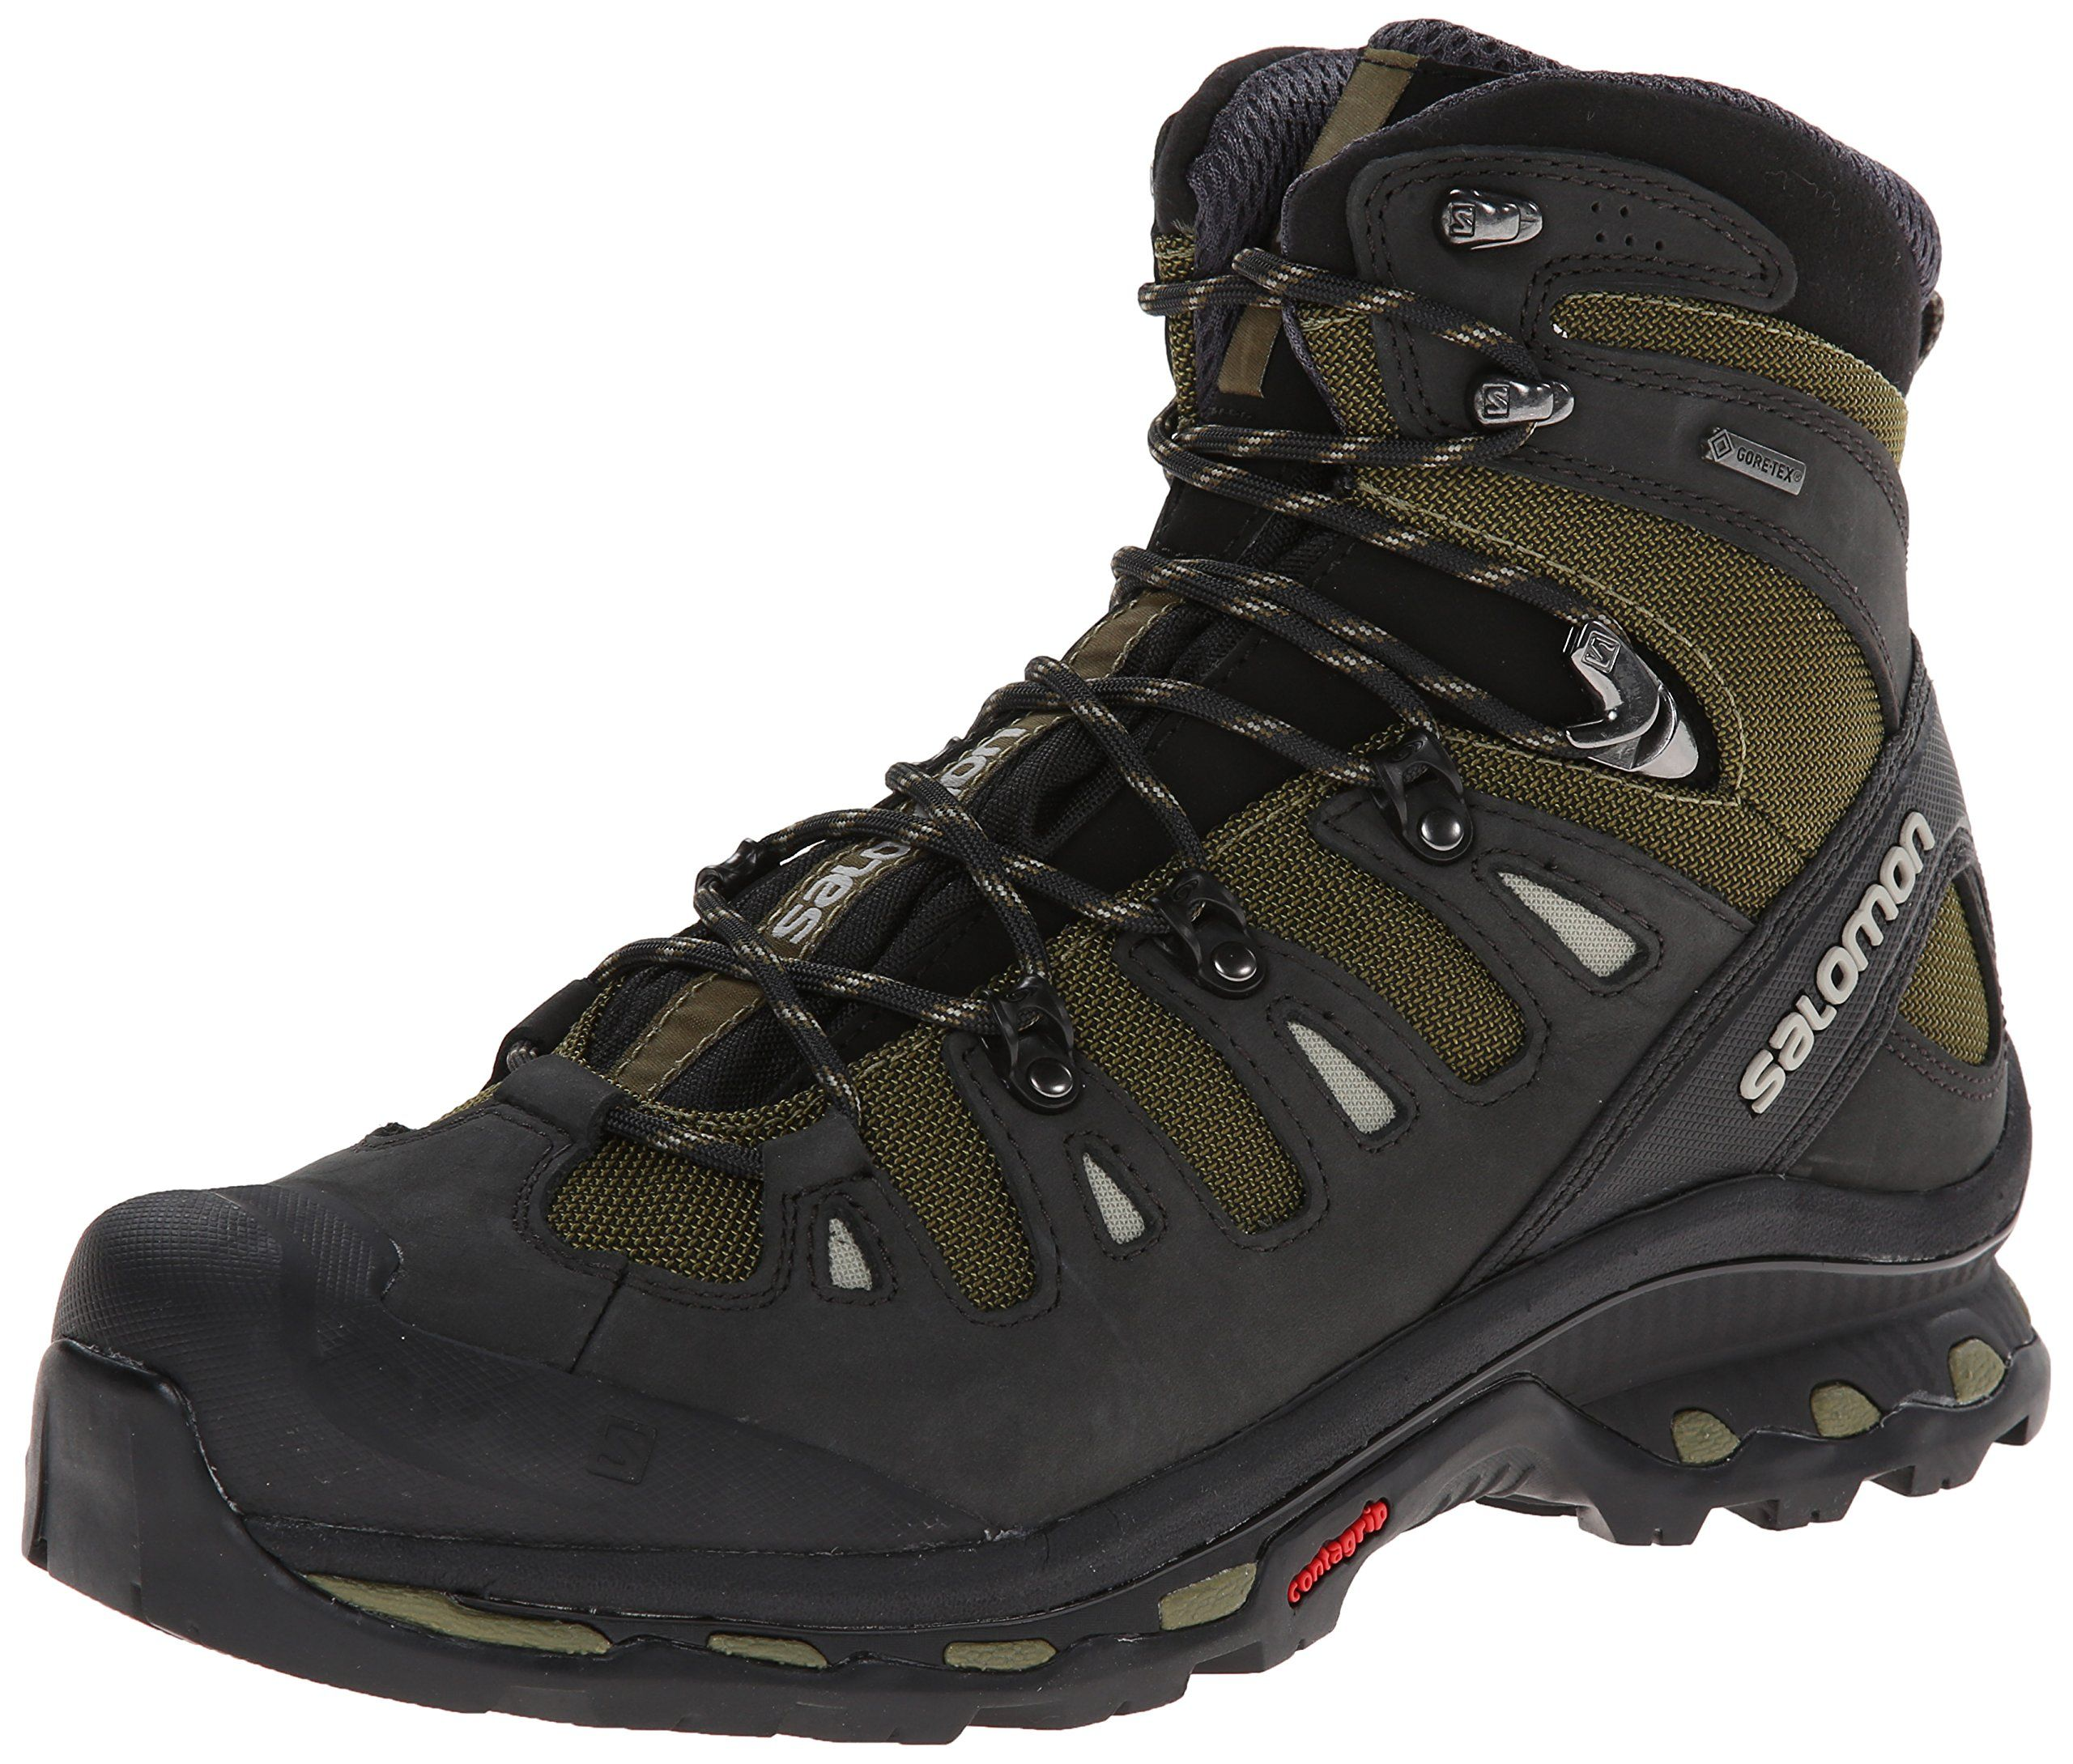 Salomon Men's Quest 4D 2 GTX Hiking Boot, Iguana Green